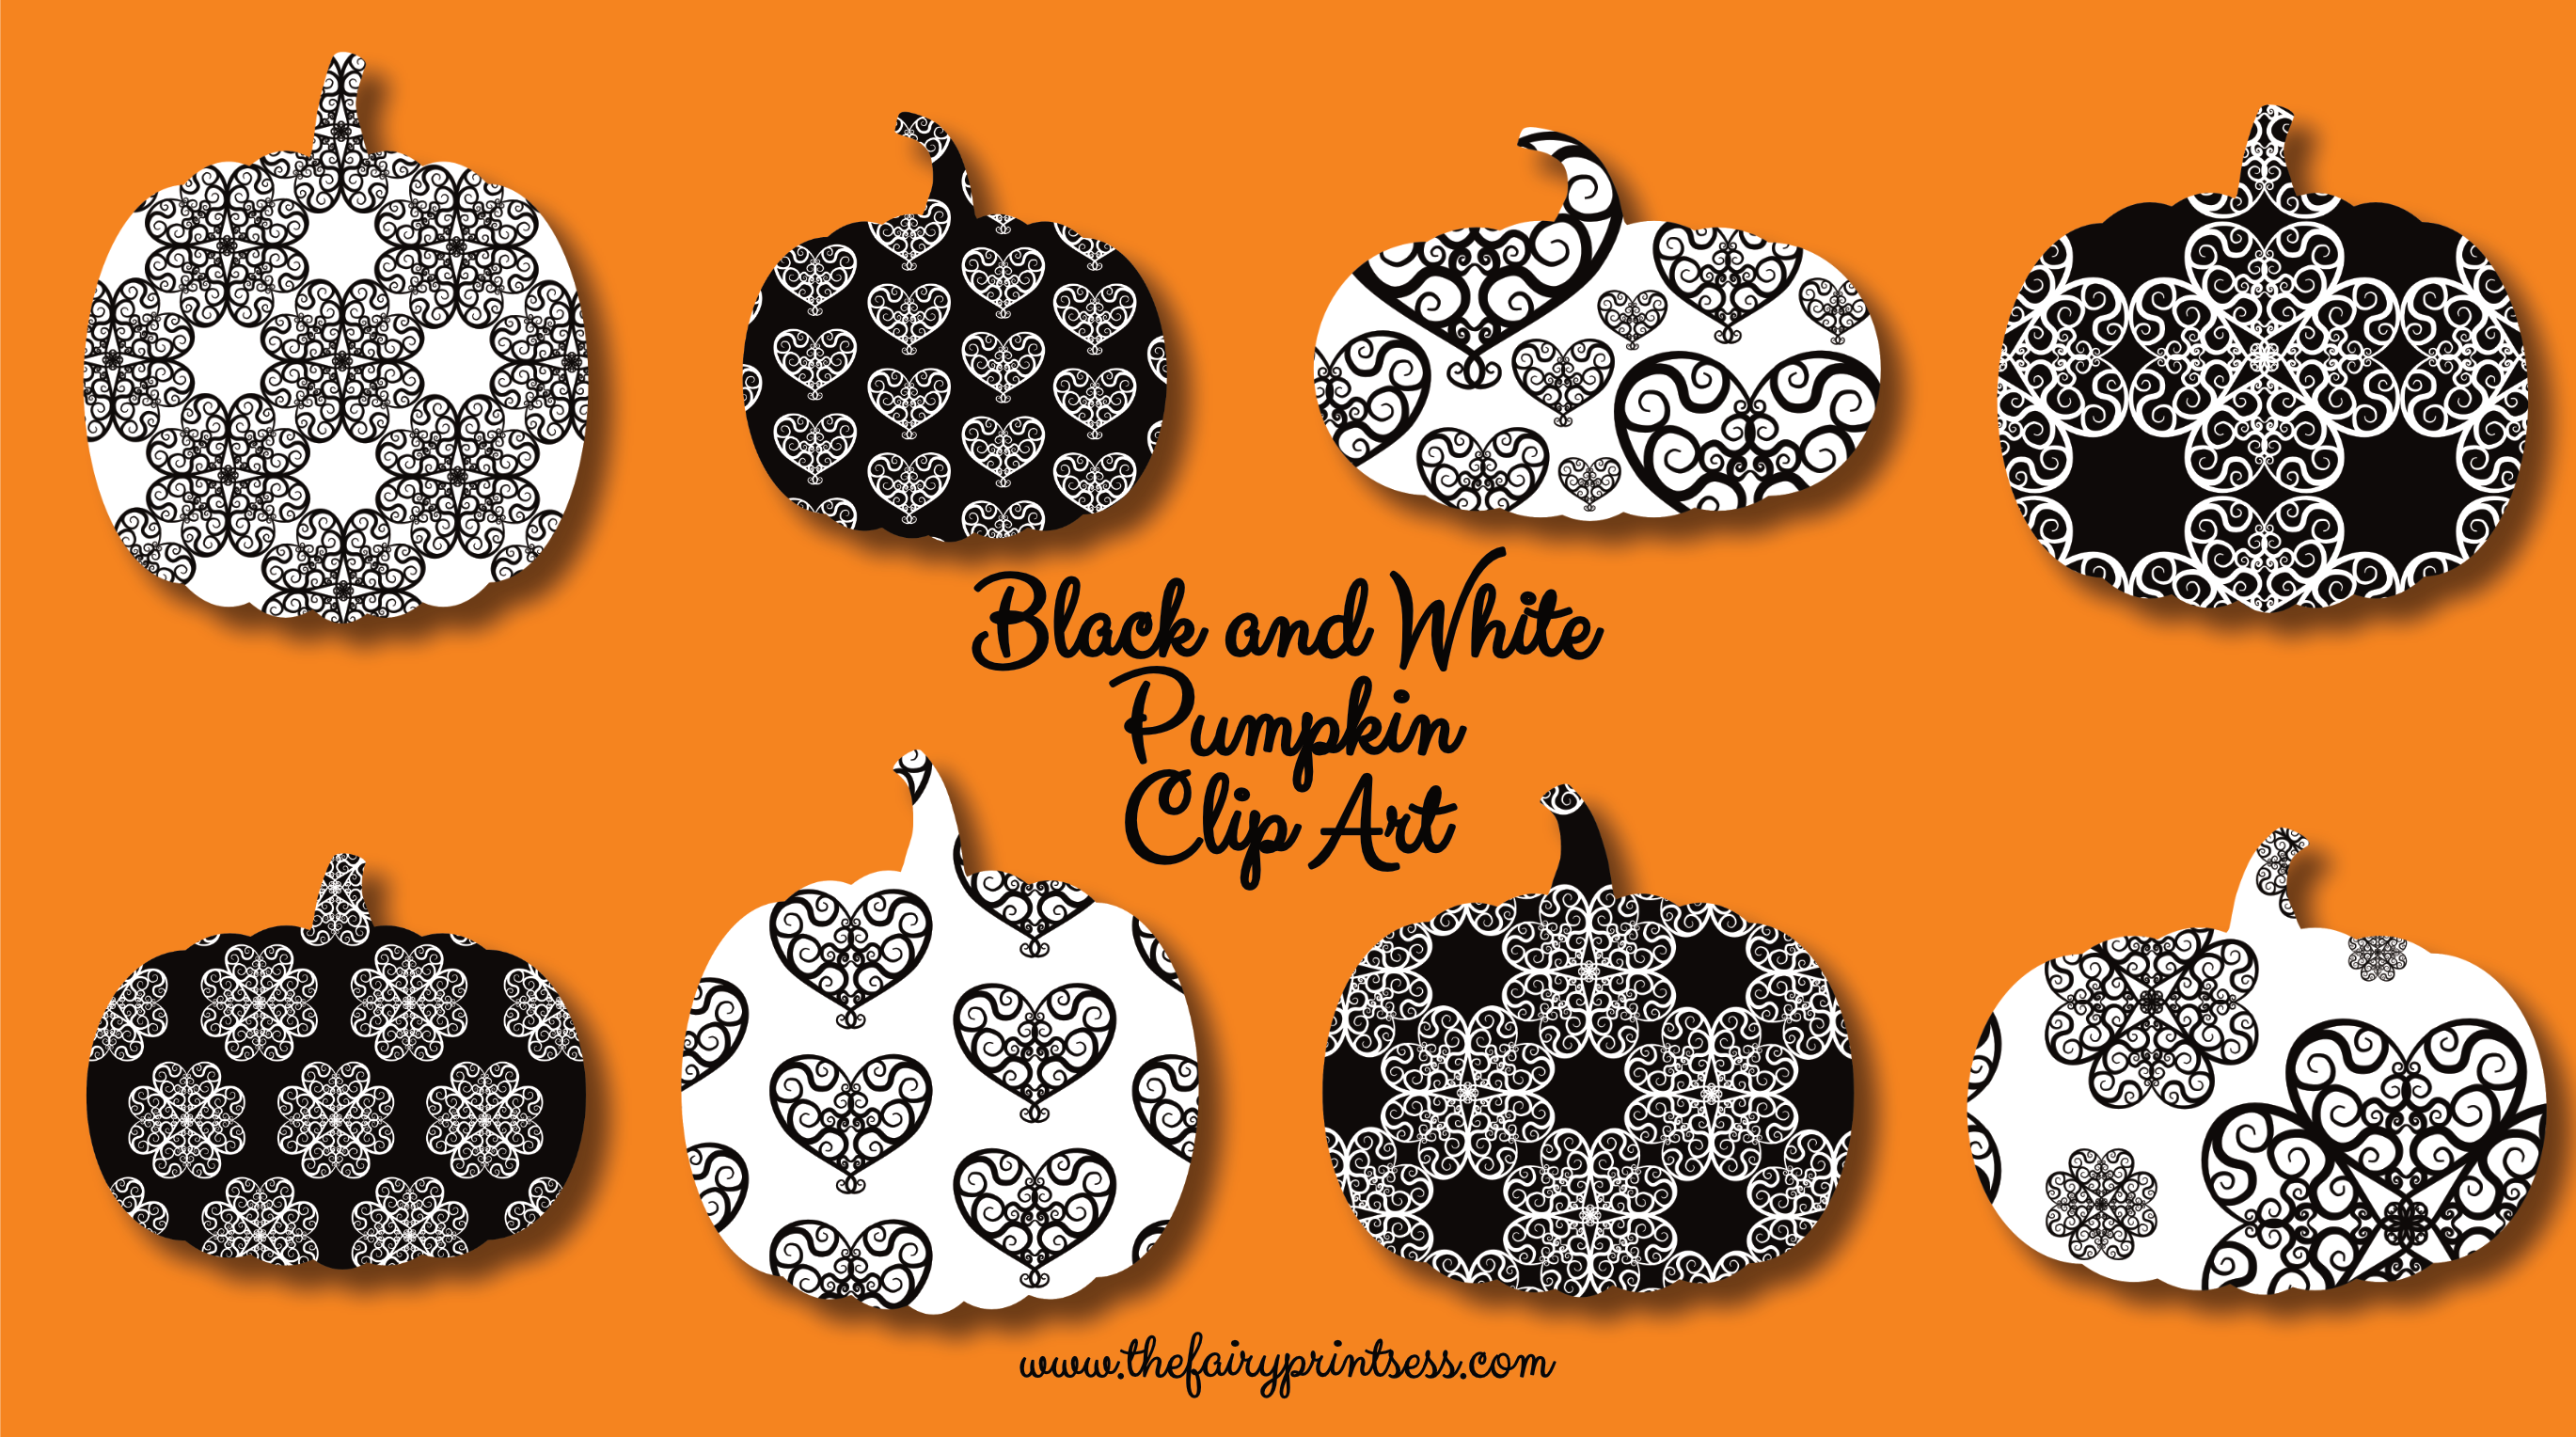 Black and White Pumpkin Clip Art.